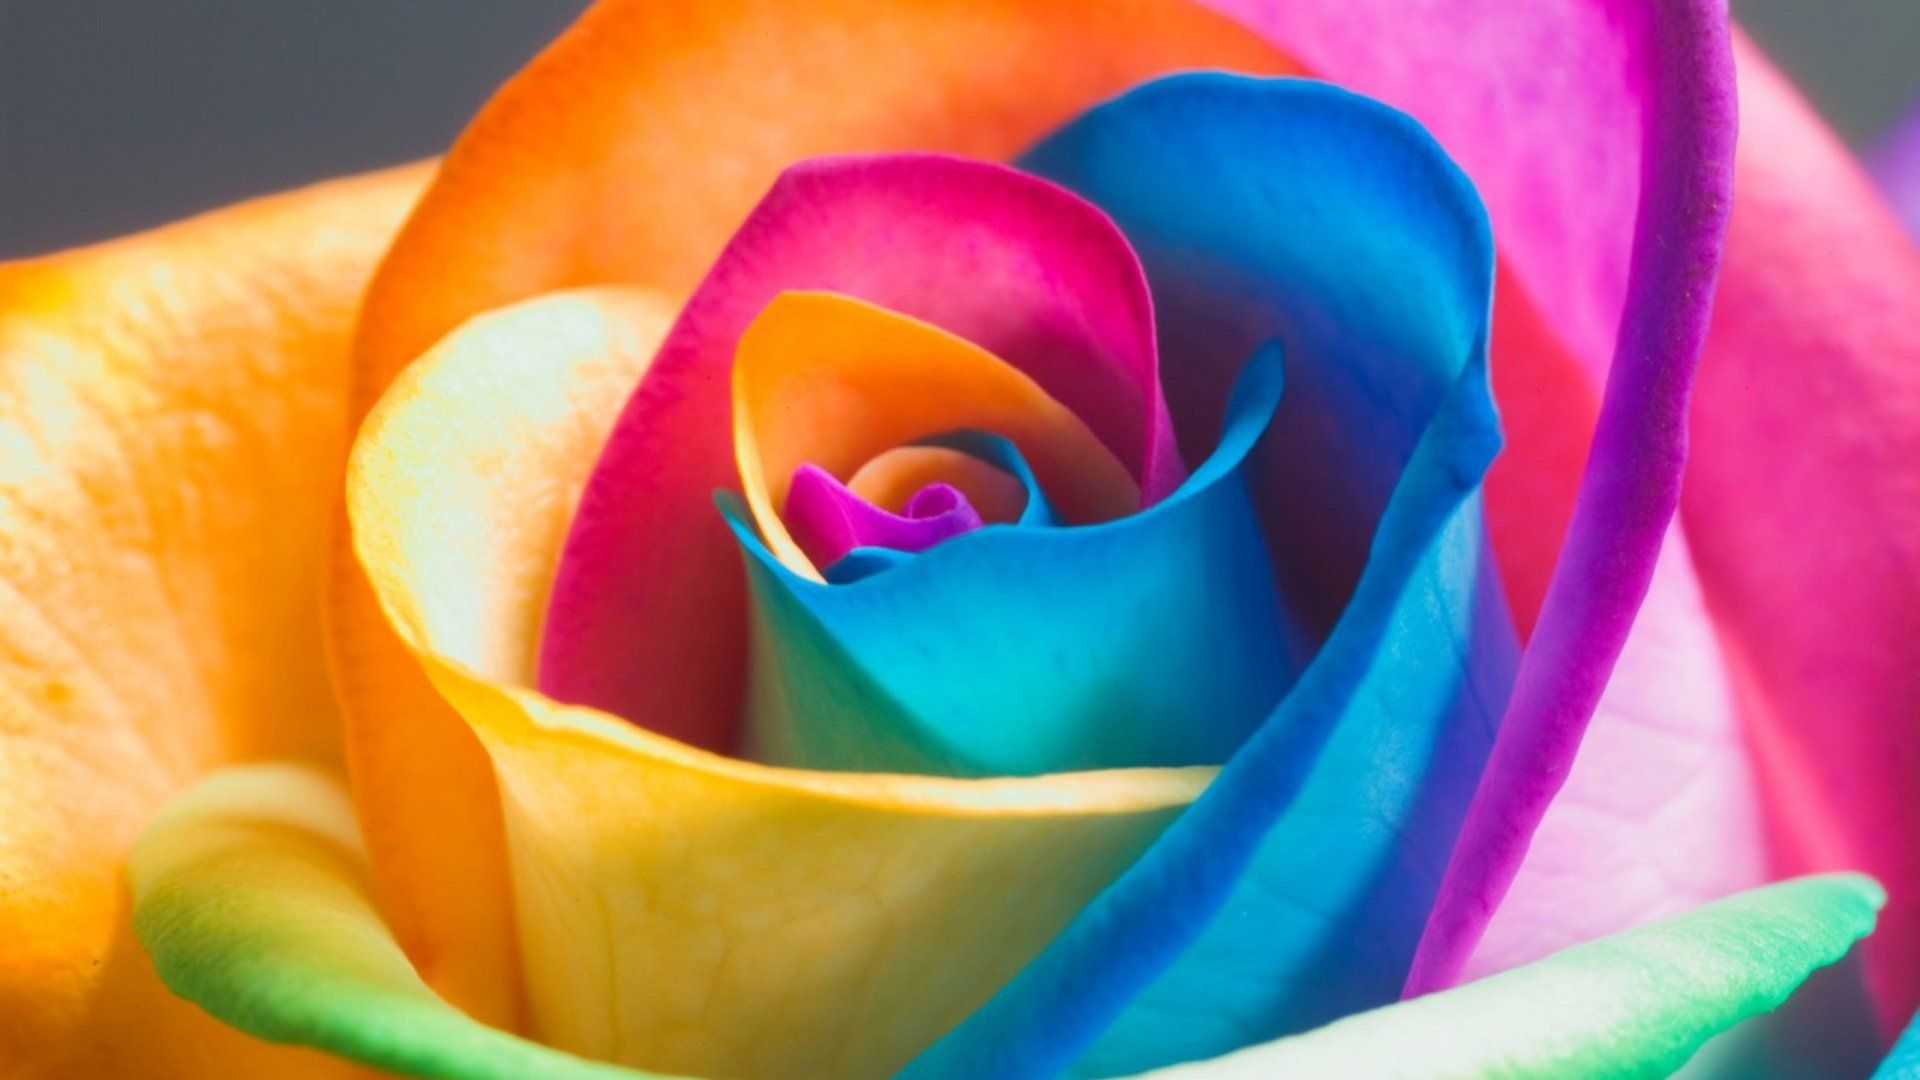 1920x1080 Colorful Flower Hd Wallpapers 1080p With Images